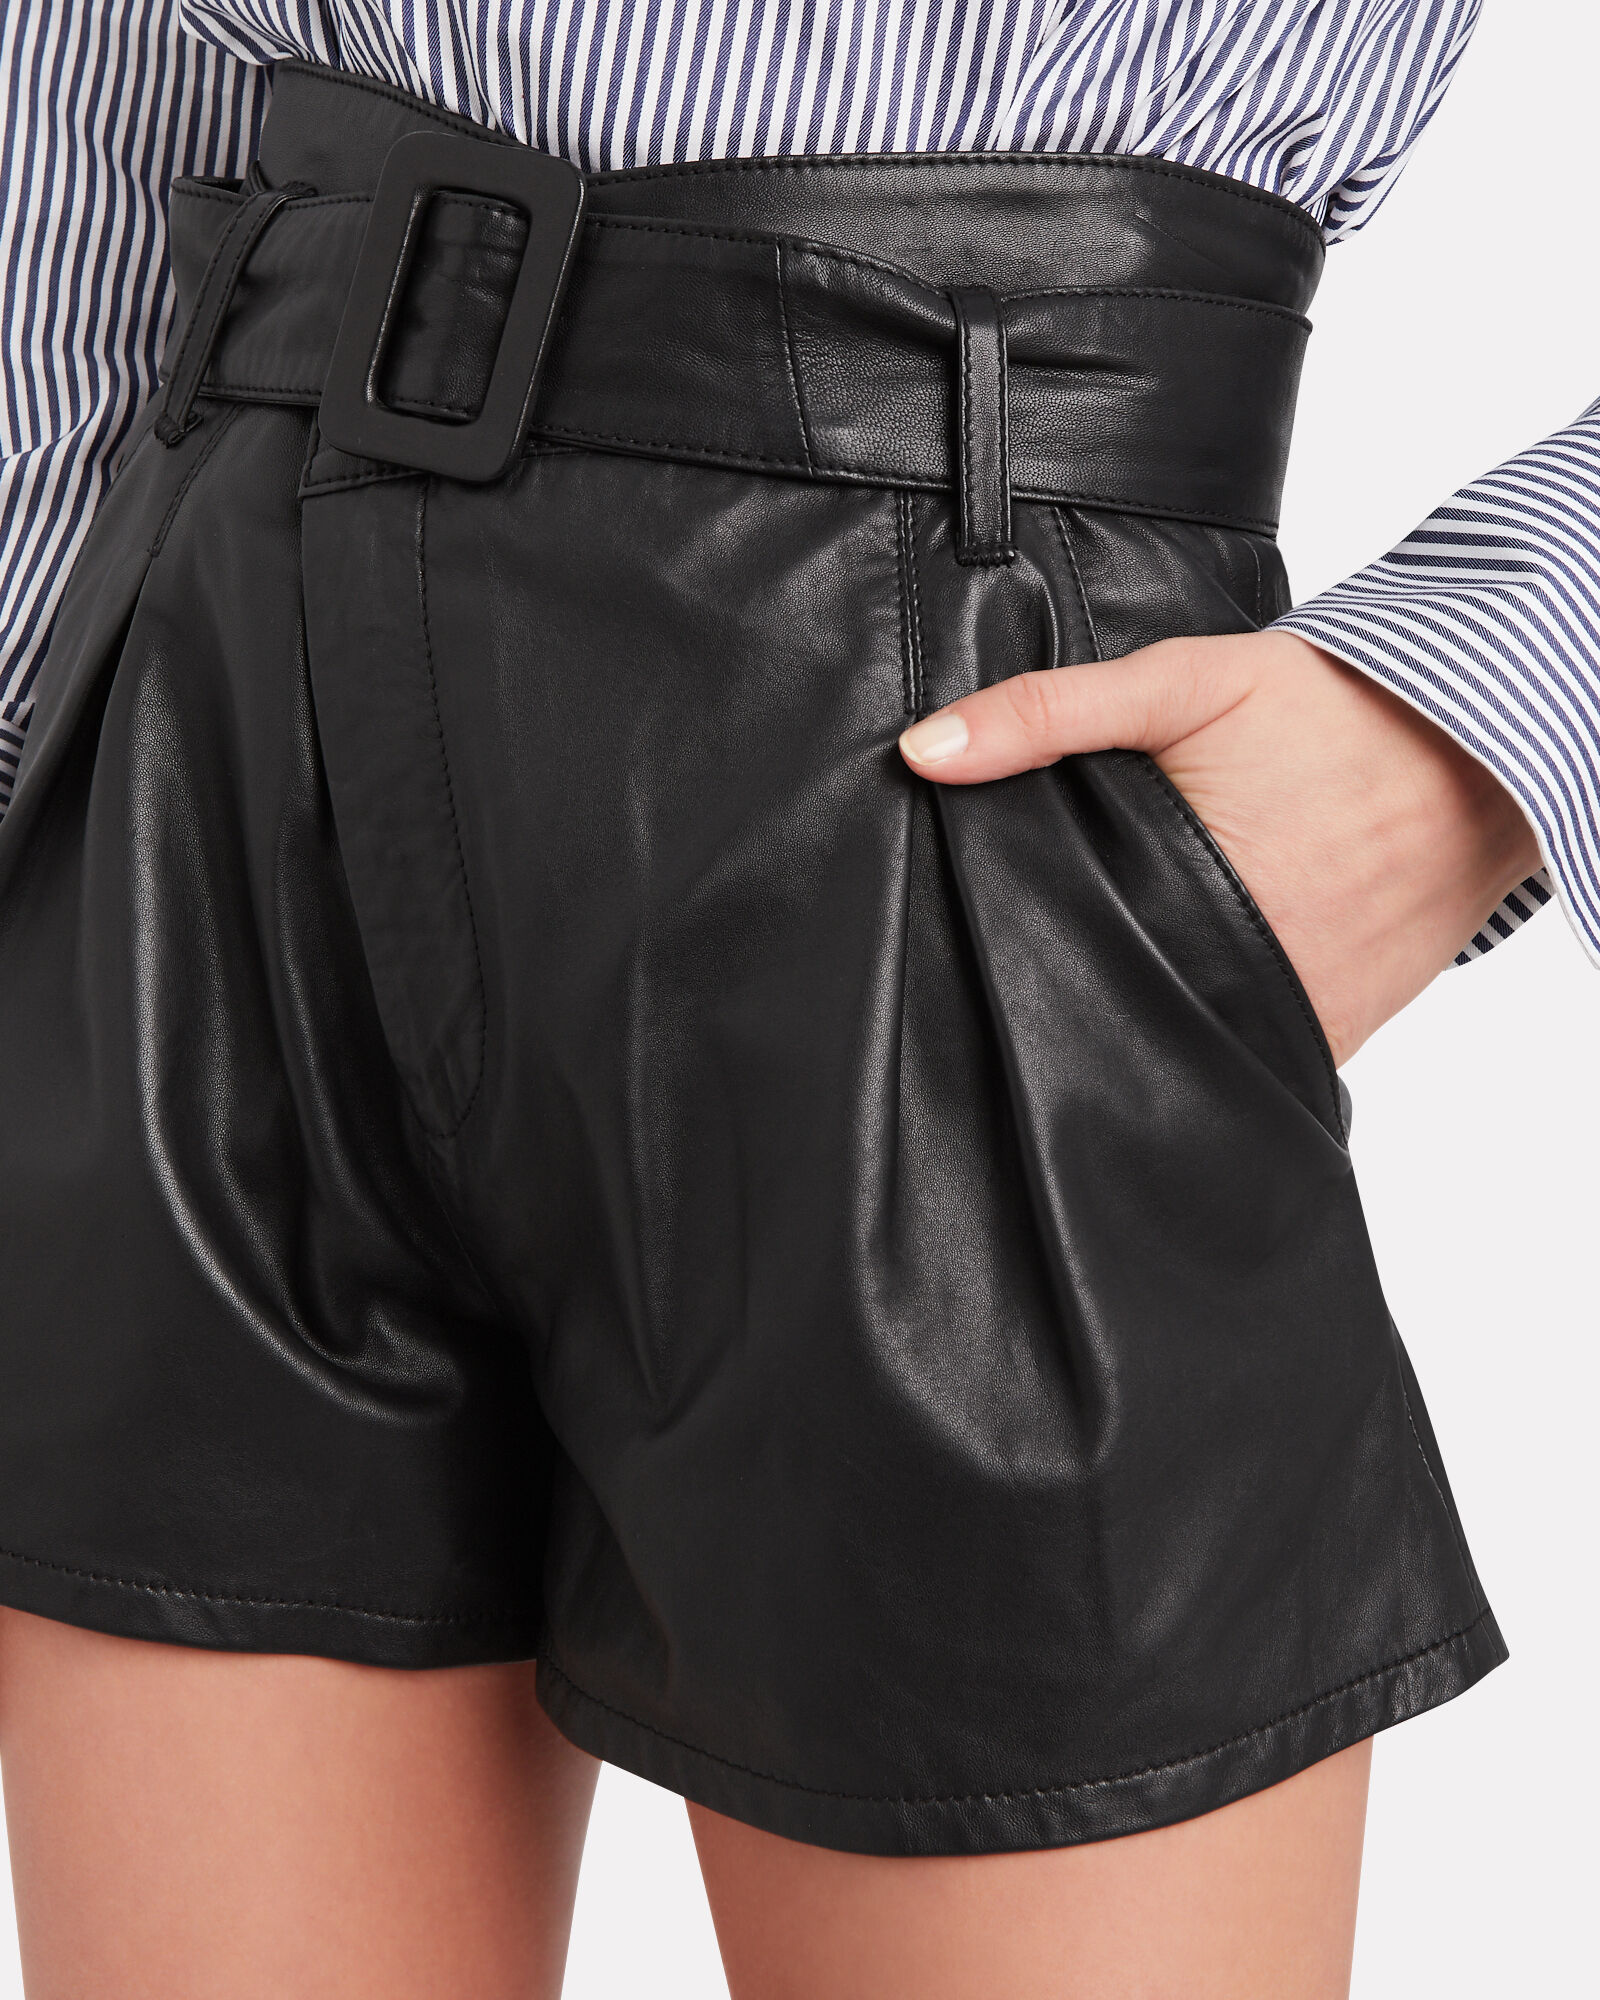 Levi Belted Leather Shorts, BLACK, hi-res